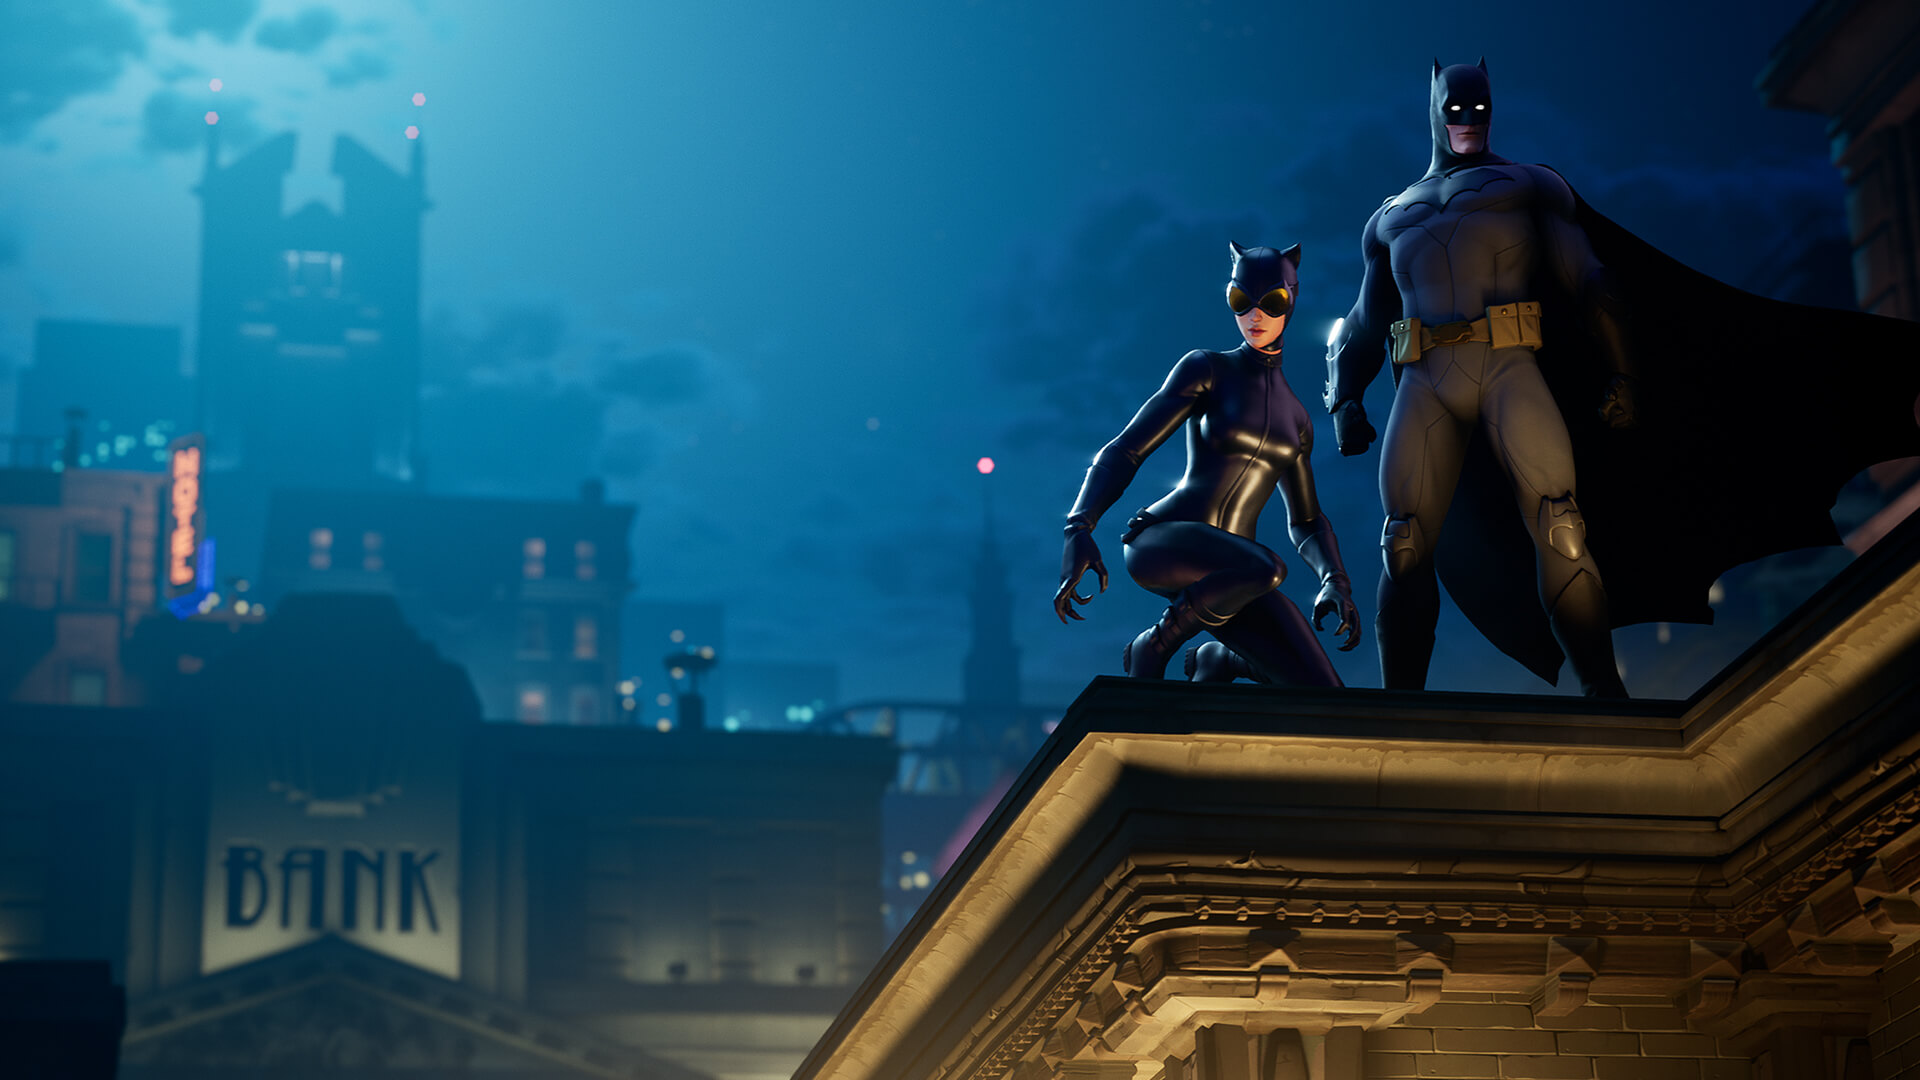 Fortnite Batman Outfit and Items